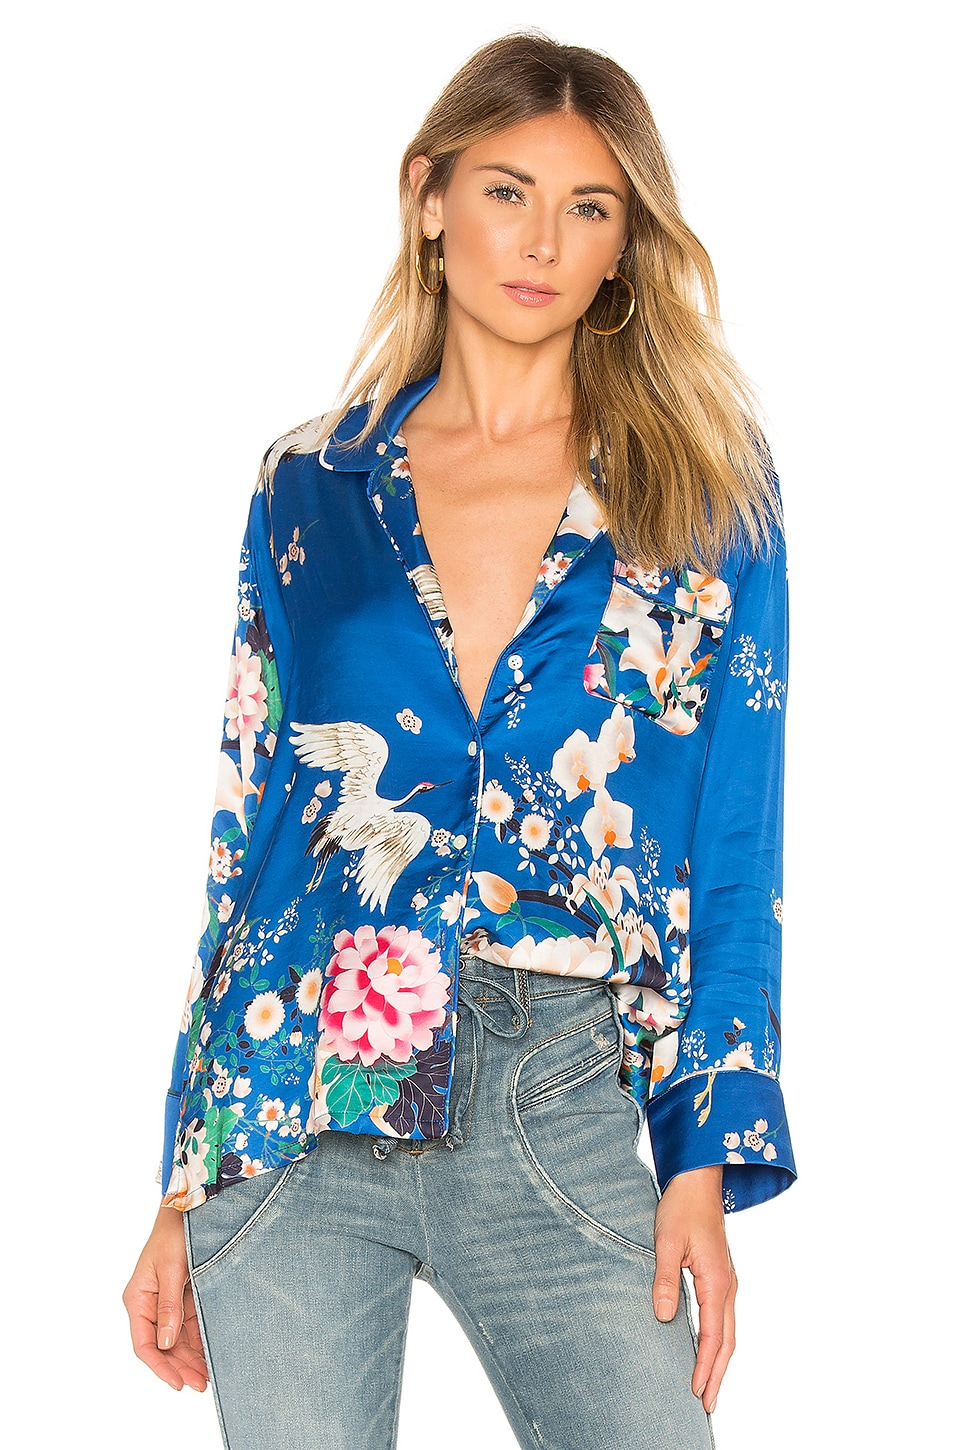 ICONS Objects of Devotion The Draper PJ Shirt in Chinoiserie Blue Bird